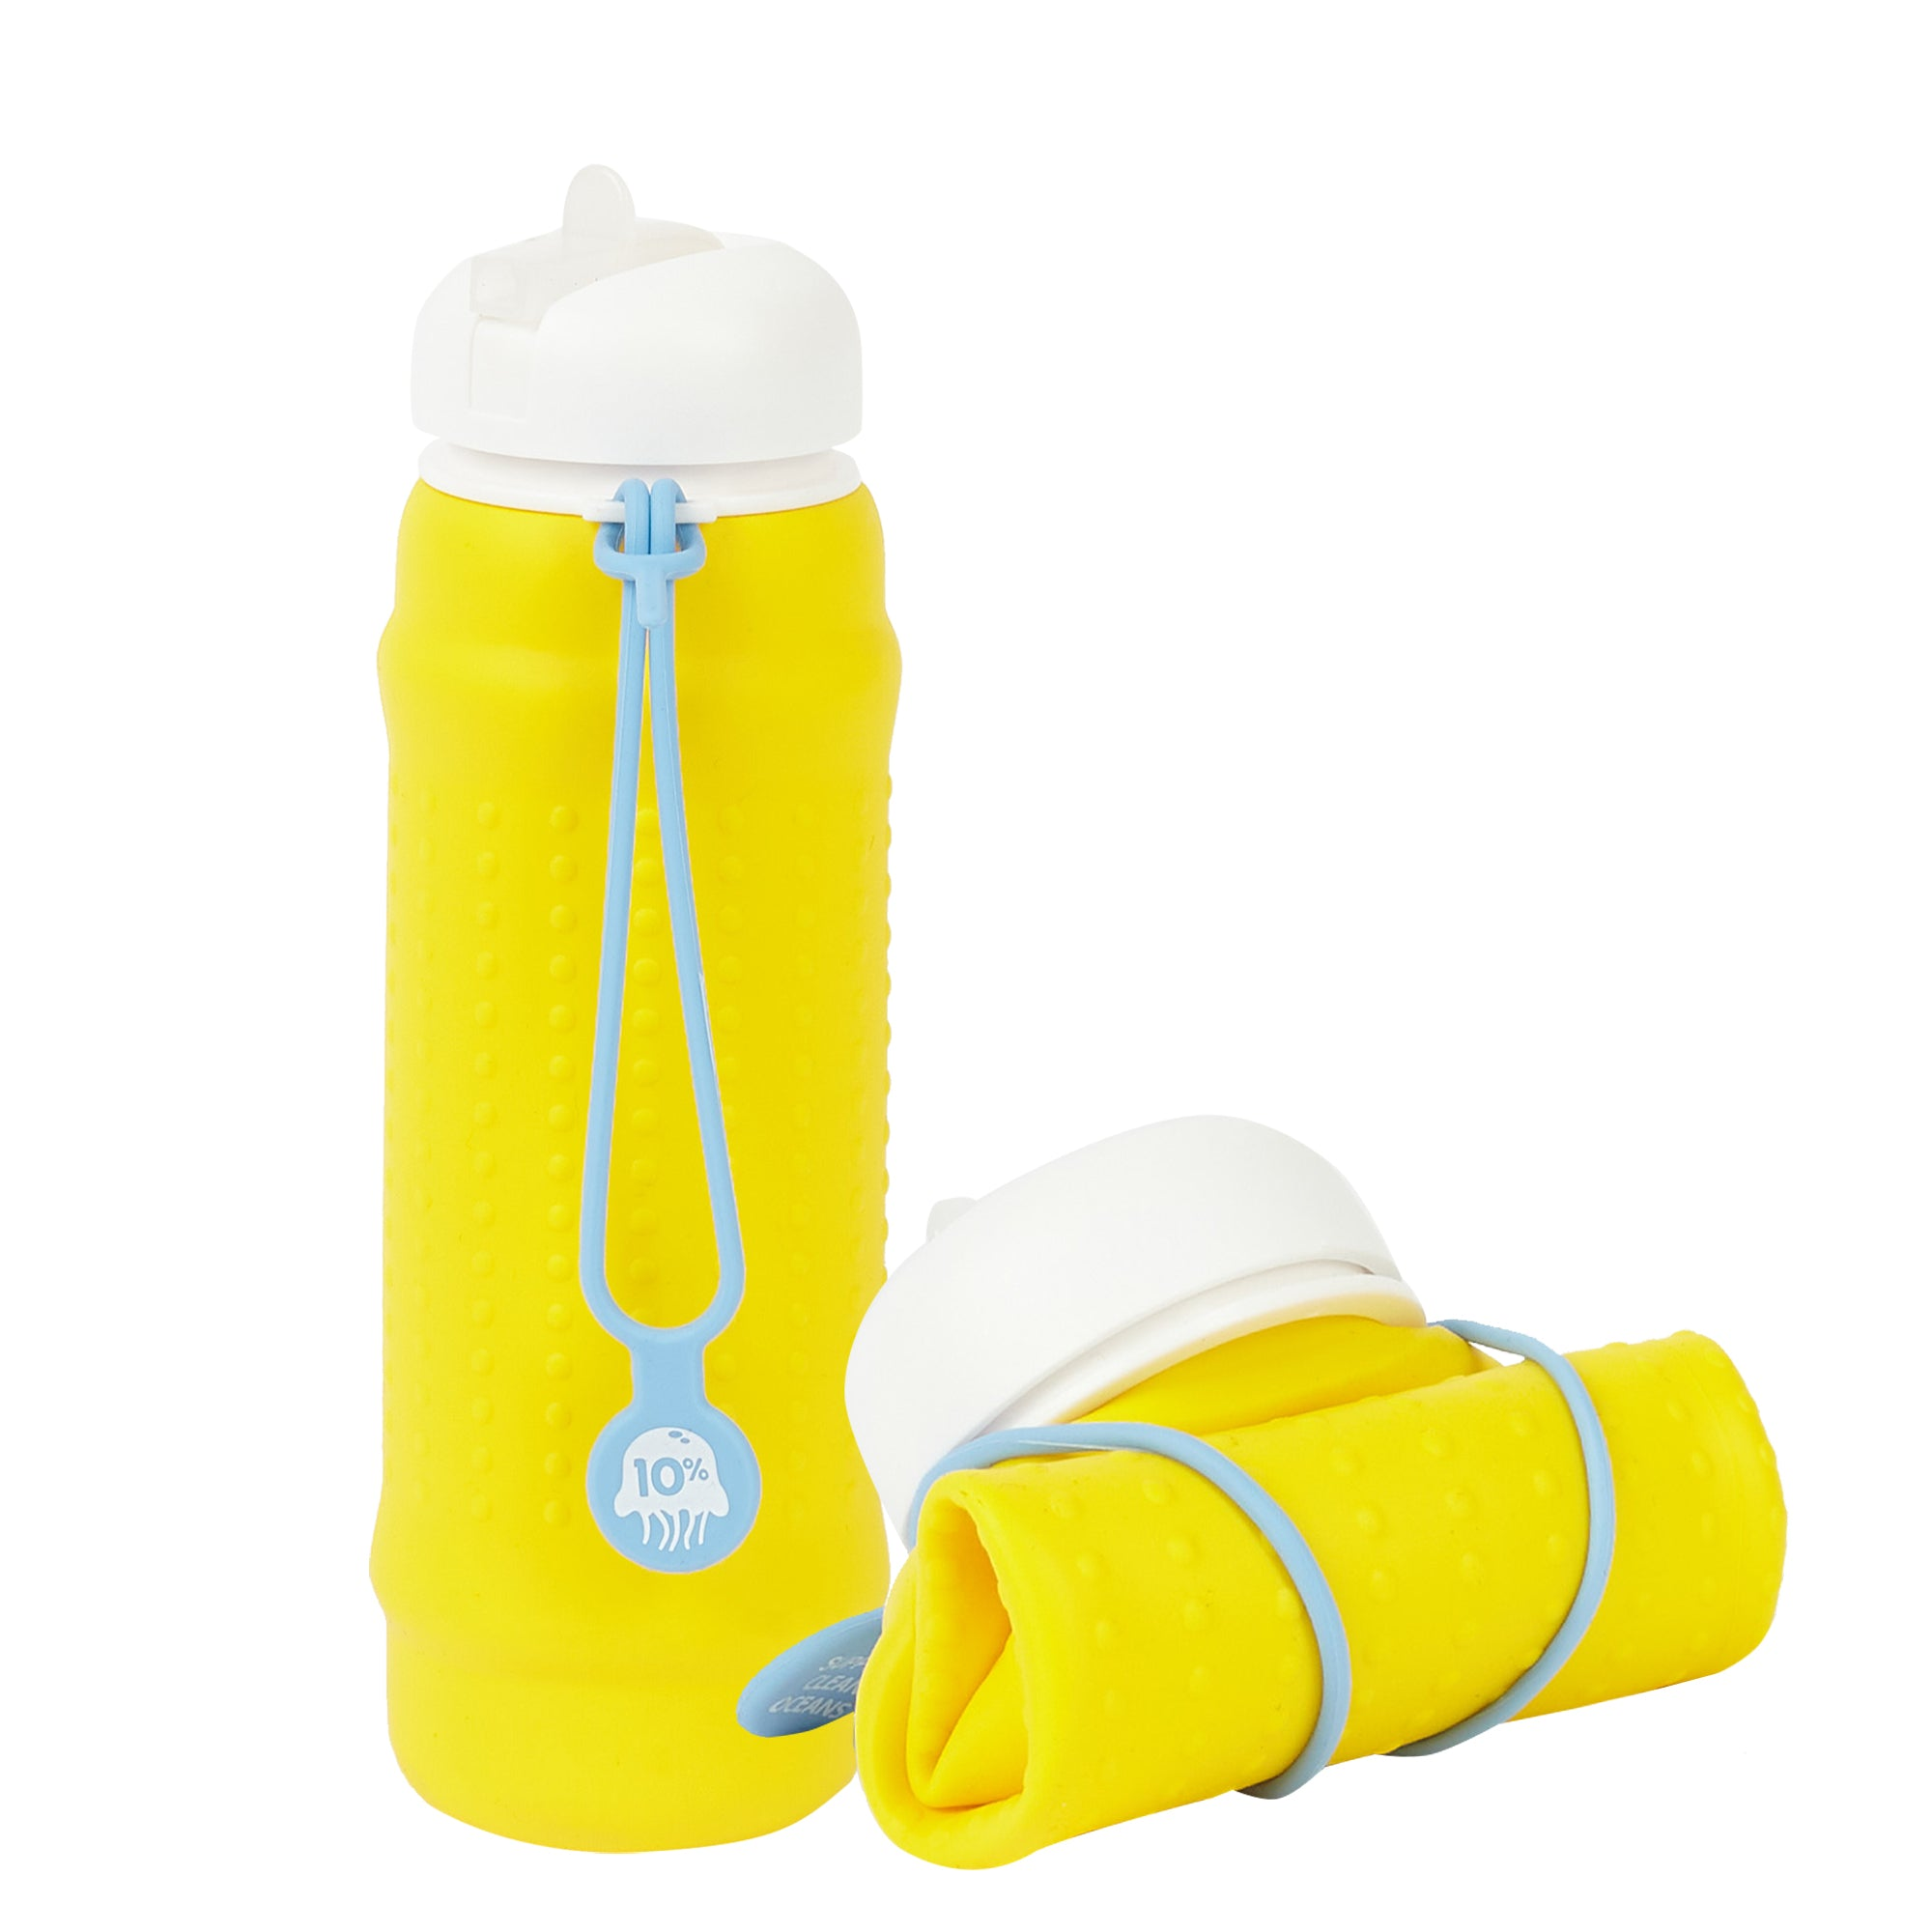 Rolla Bottle - Yellow, White Lid + Dusty Blue Strap - tall and rolled